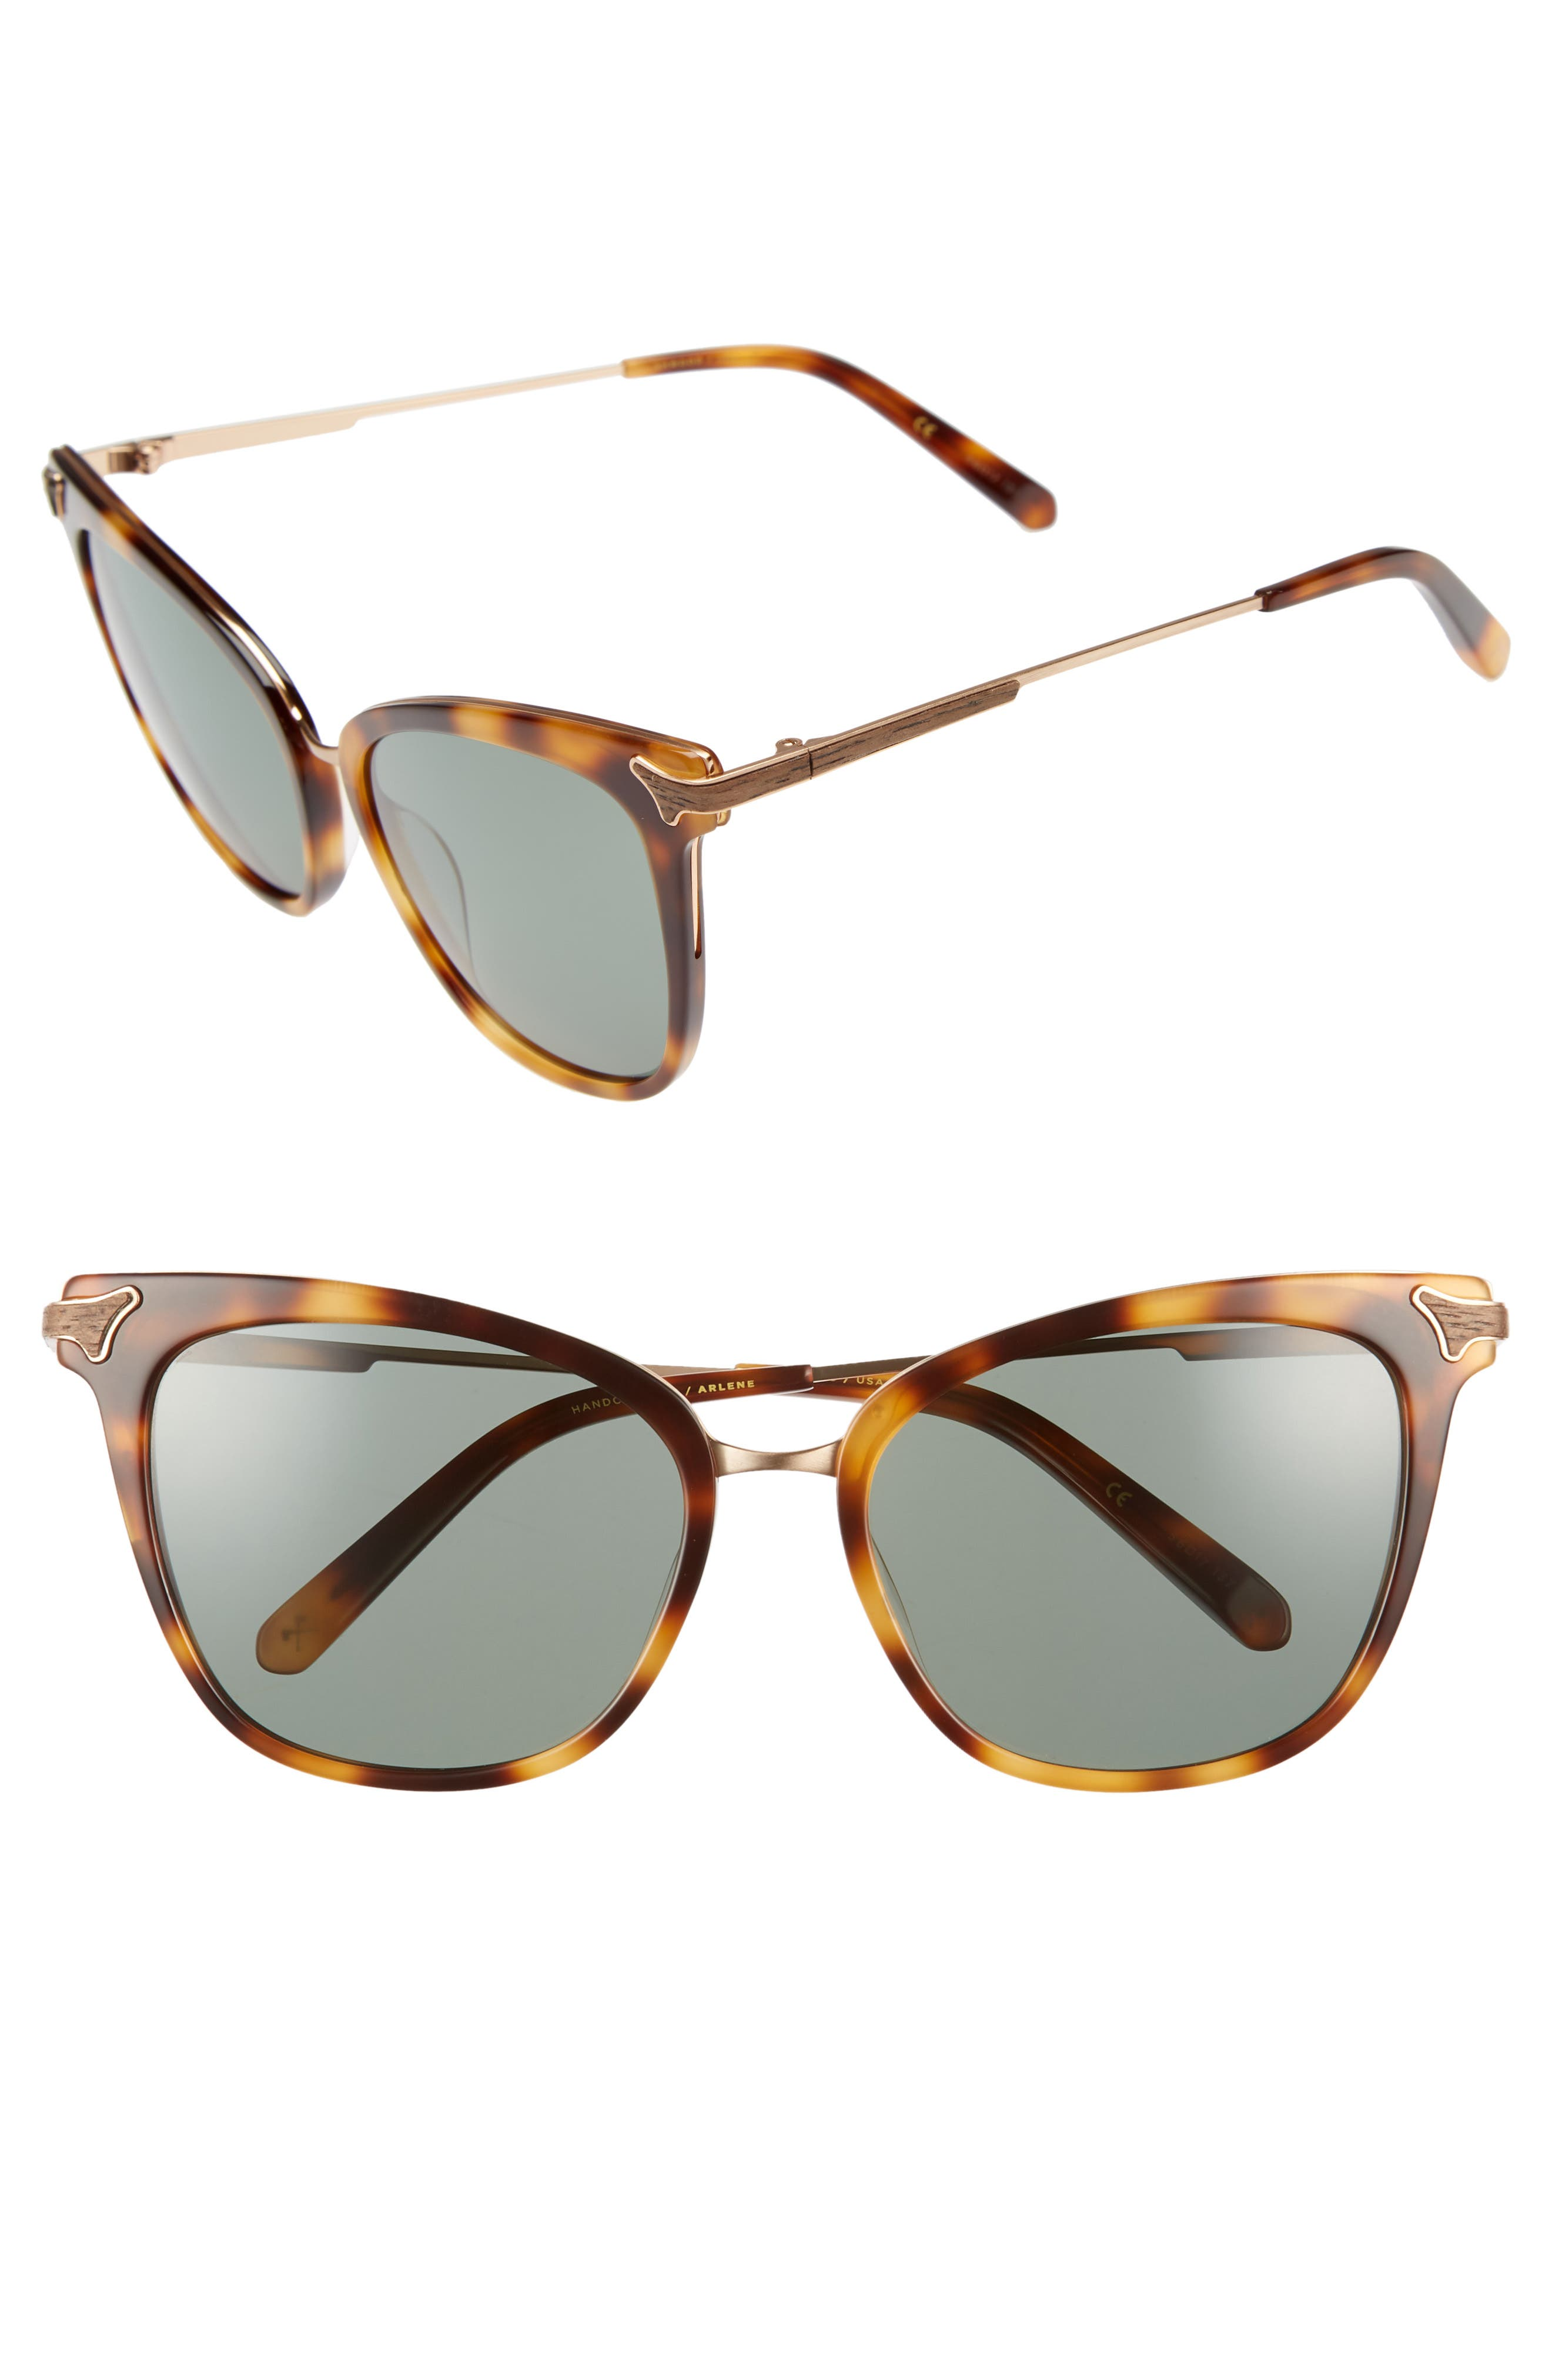 ARLENE 56MM POLARIZED CAT EYE SUNGLASSES - TORTOISE/GOLD/ GREEN